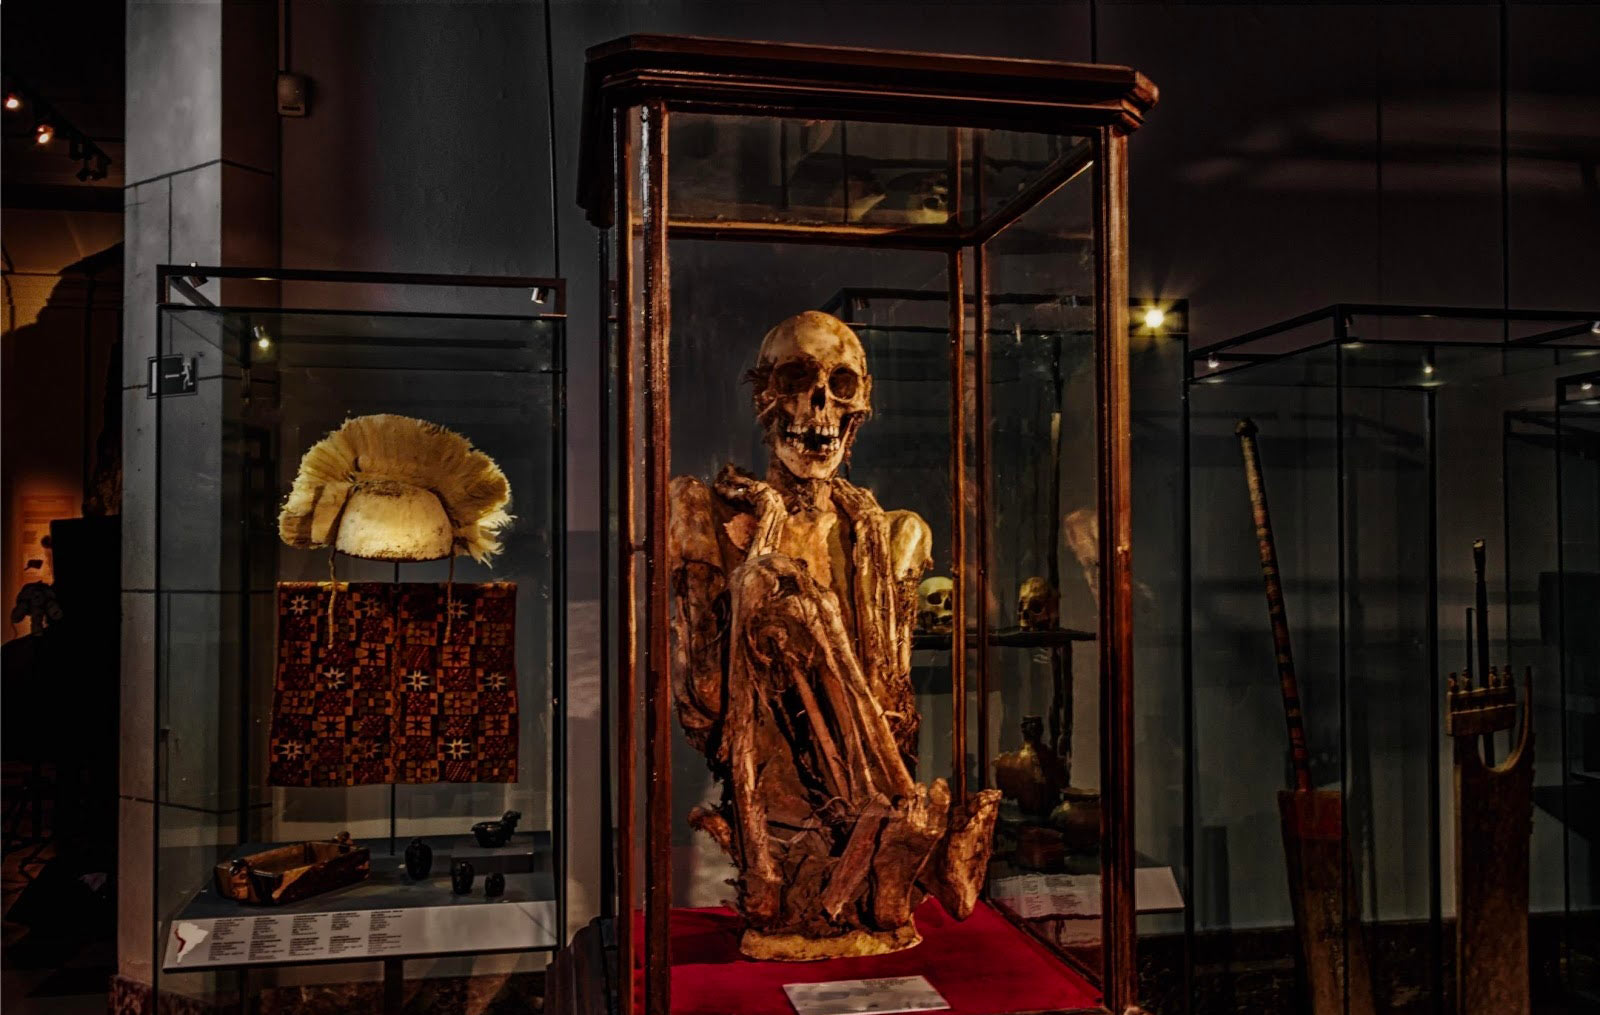 Rascar Capac - Mummy at The Cinquantenaire Museum in Brussels